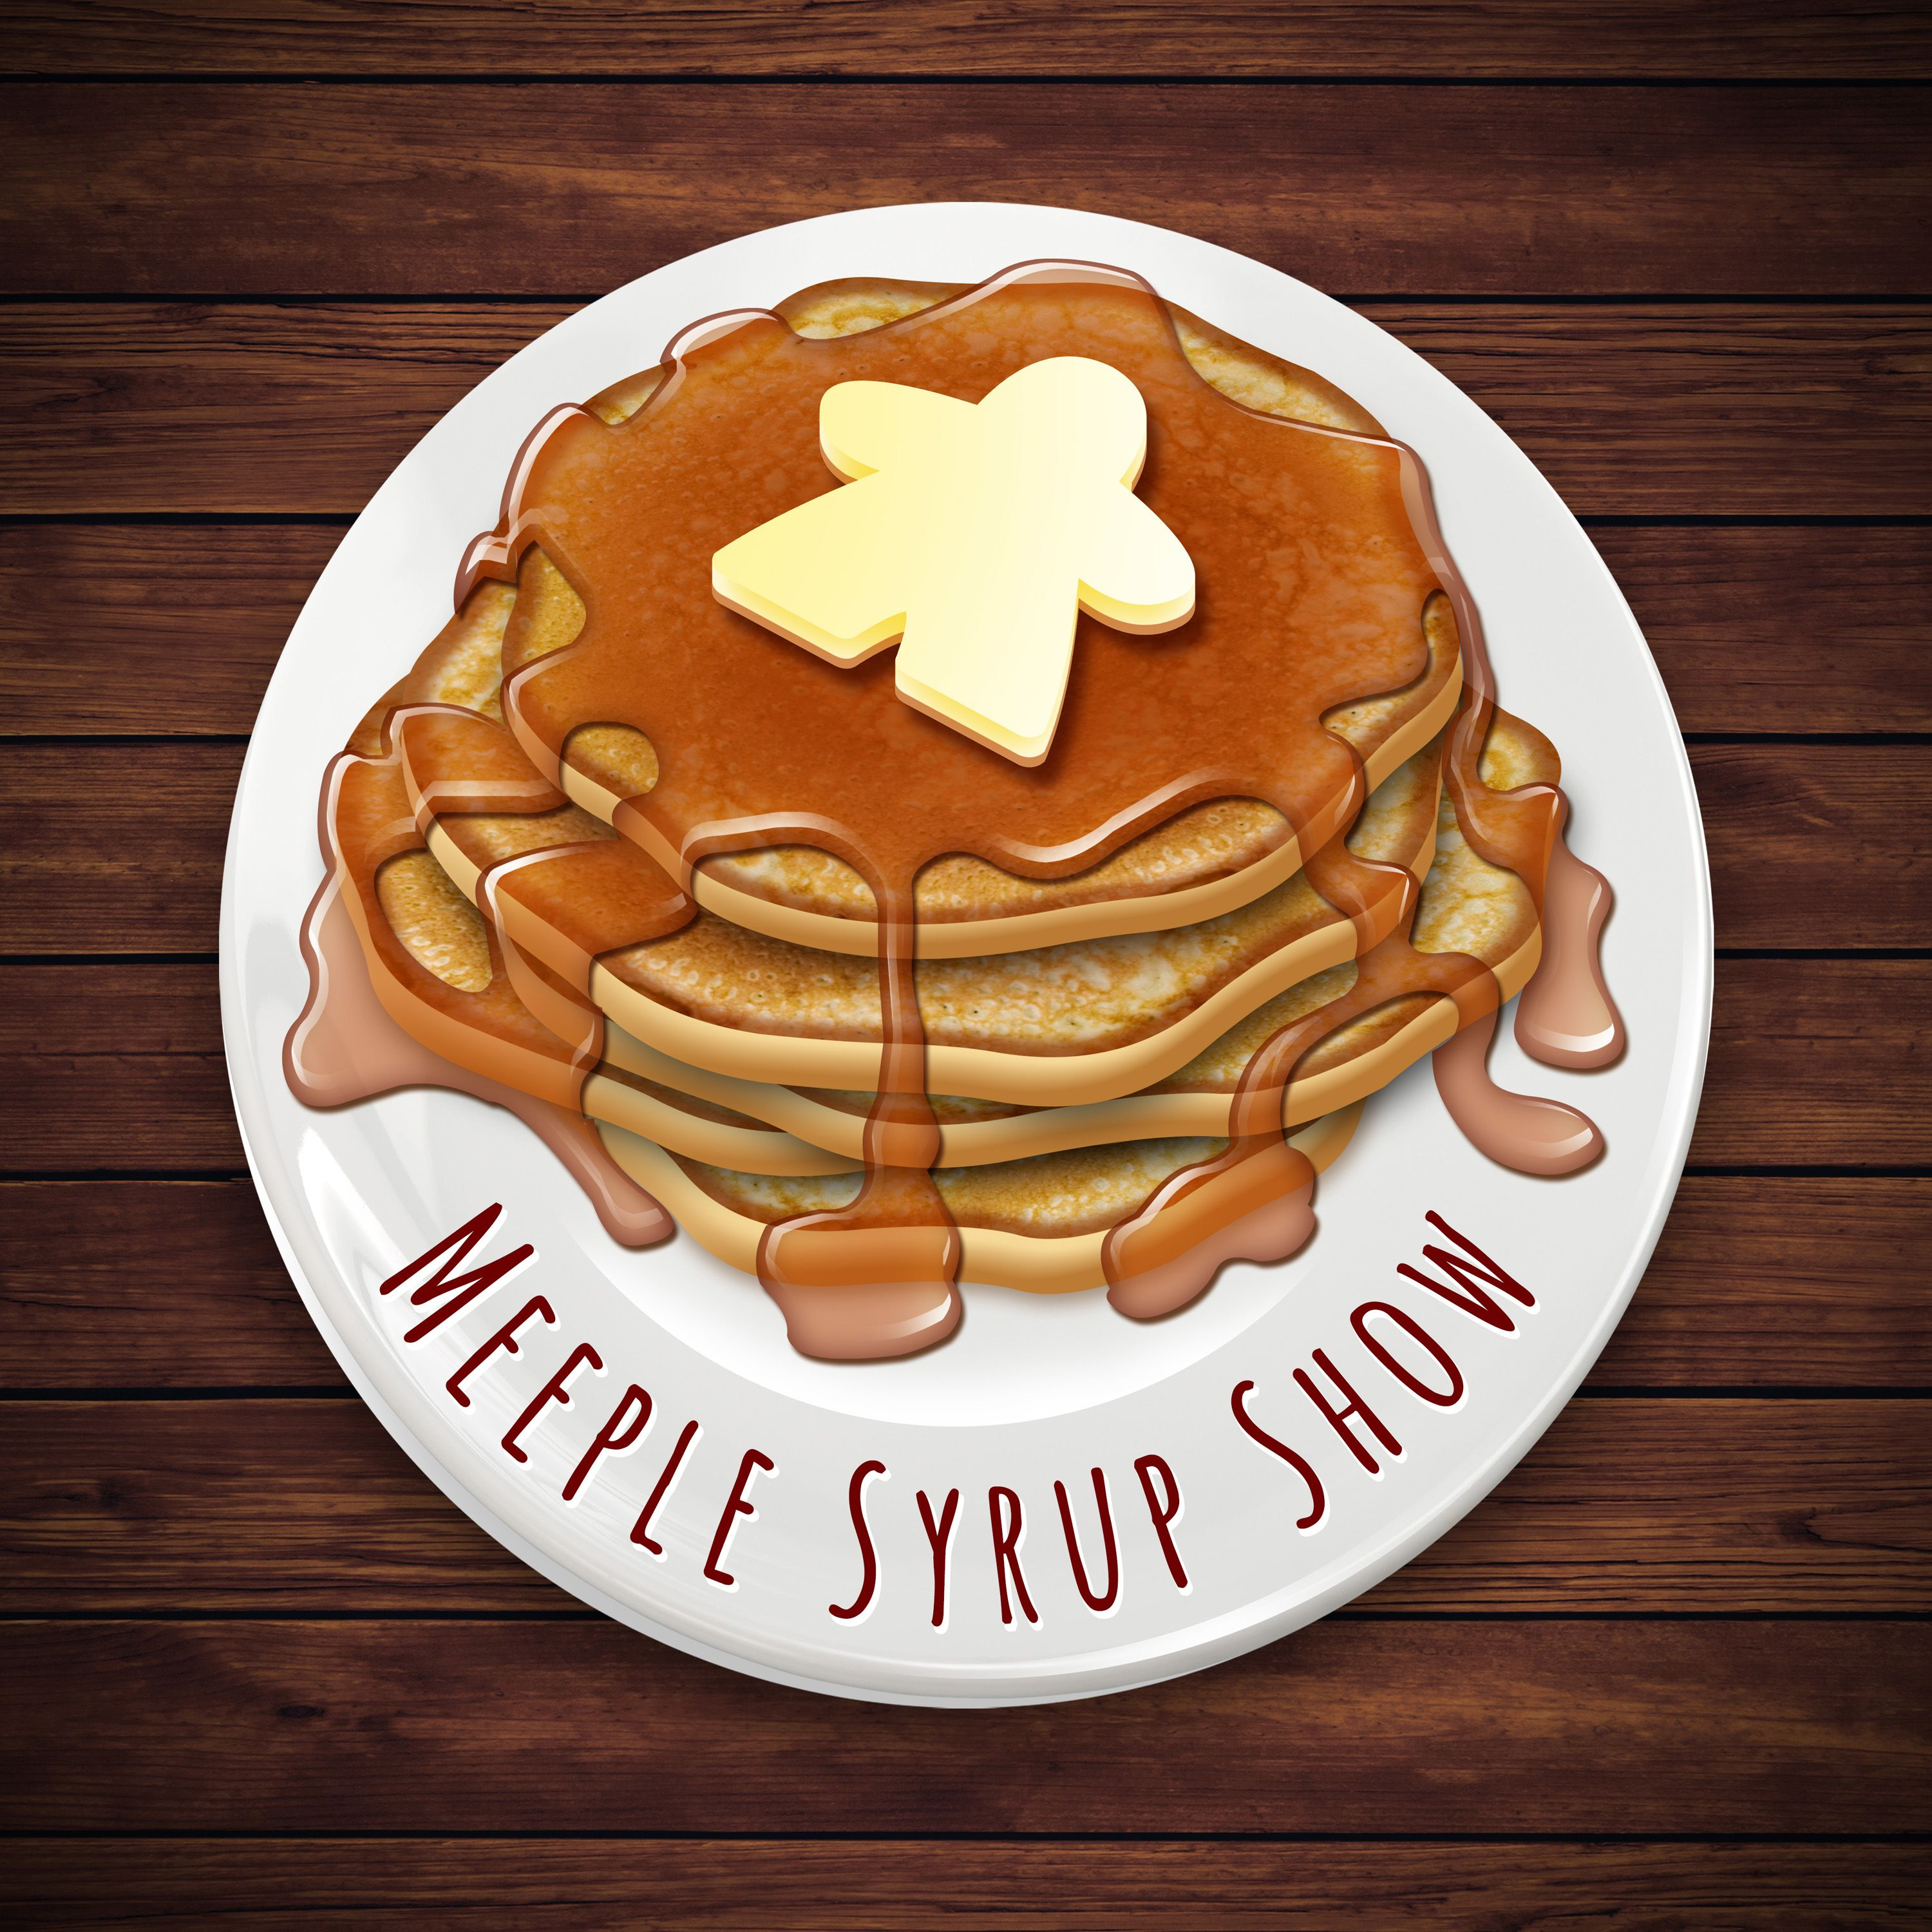 Meeple Syrup Show Episode 106: Aftershow